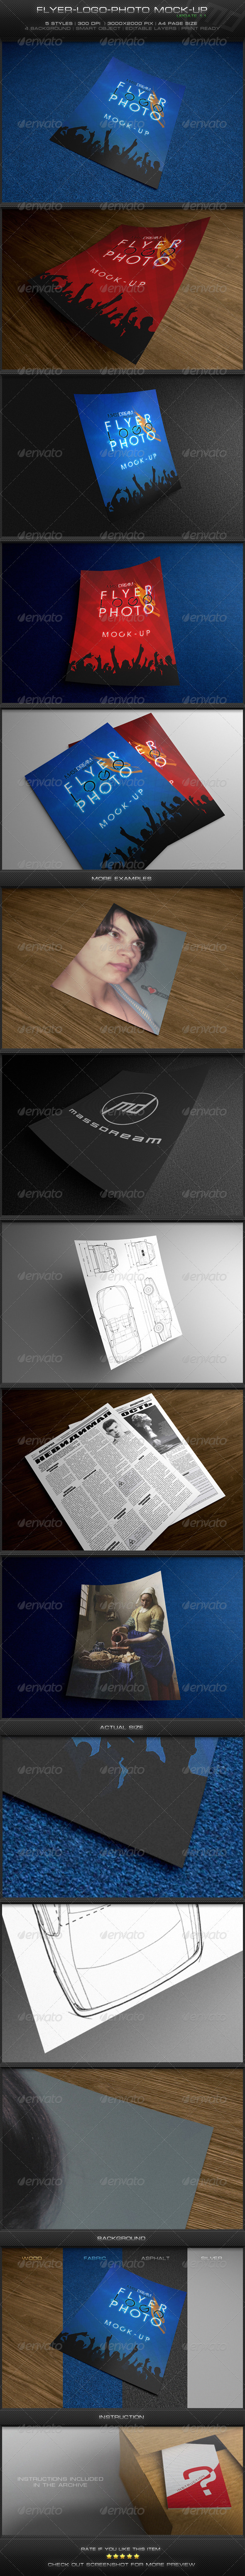 GraphicRiver Flyer-Logo-Photo Mock-Up 1747605